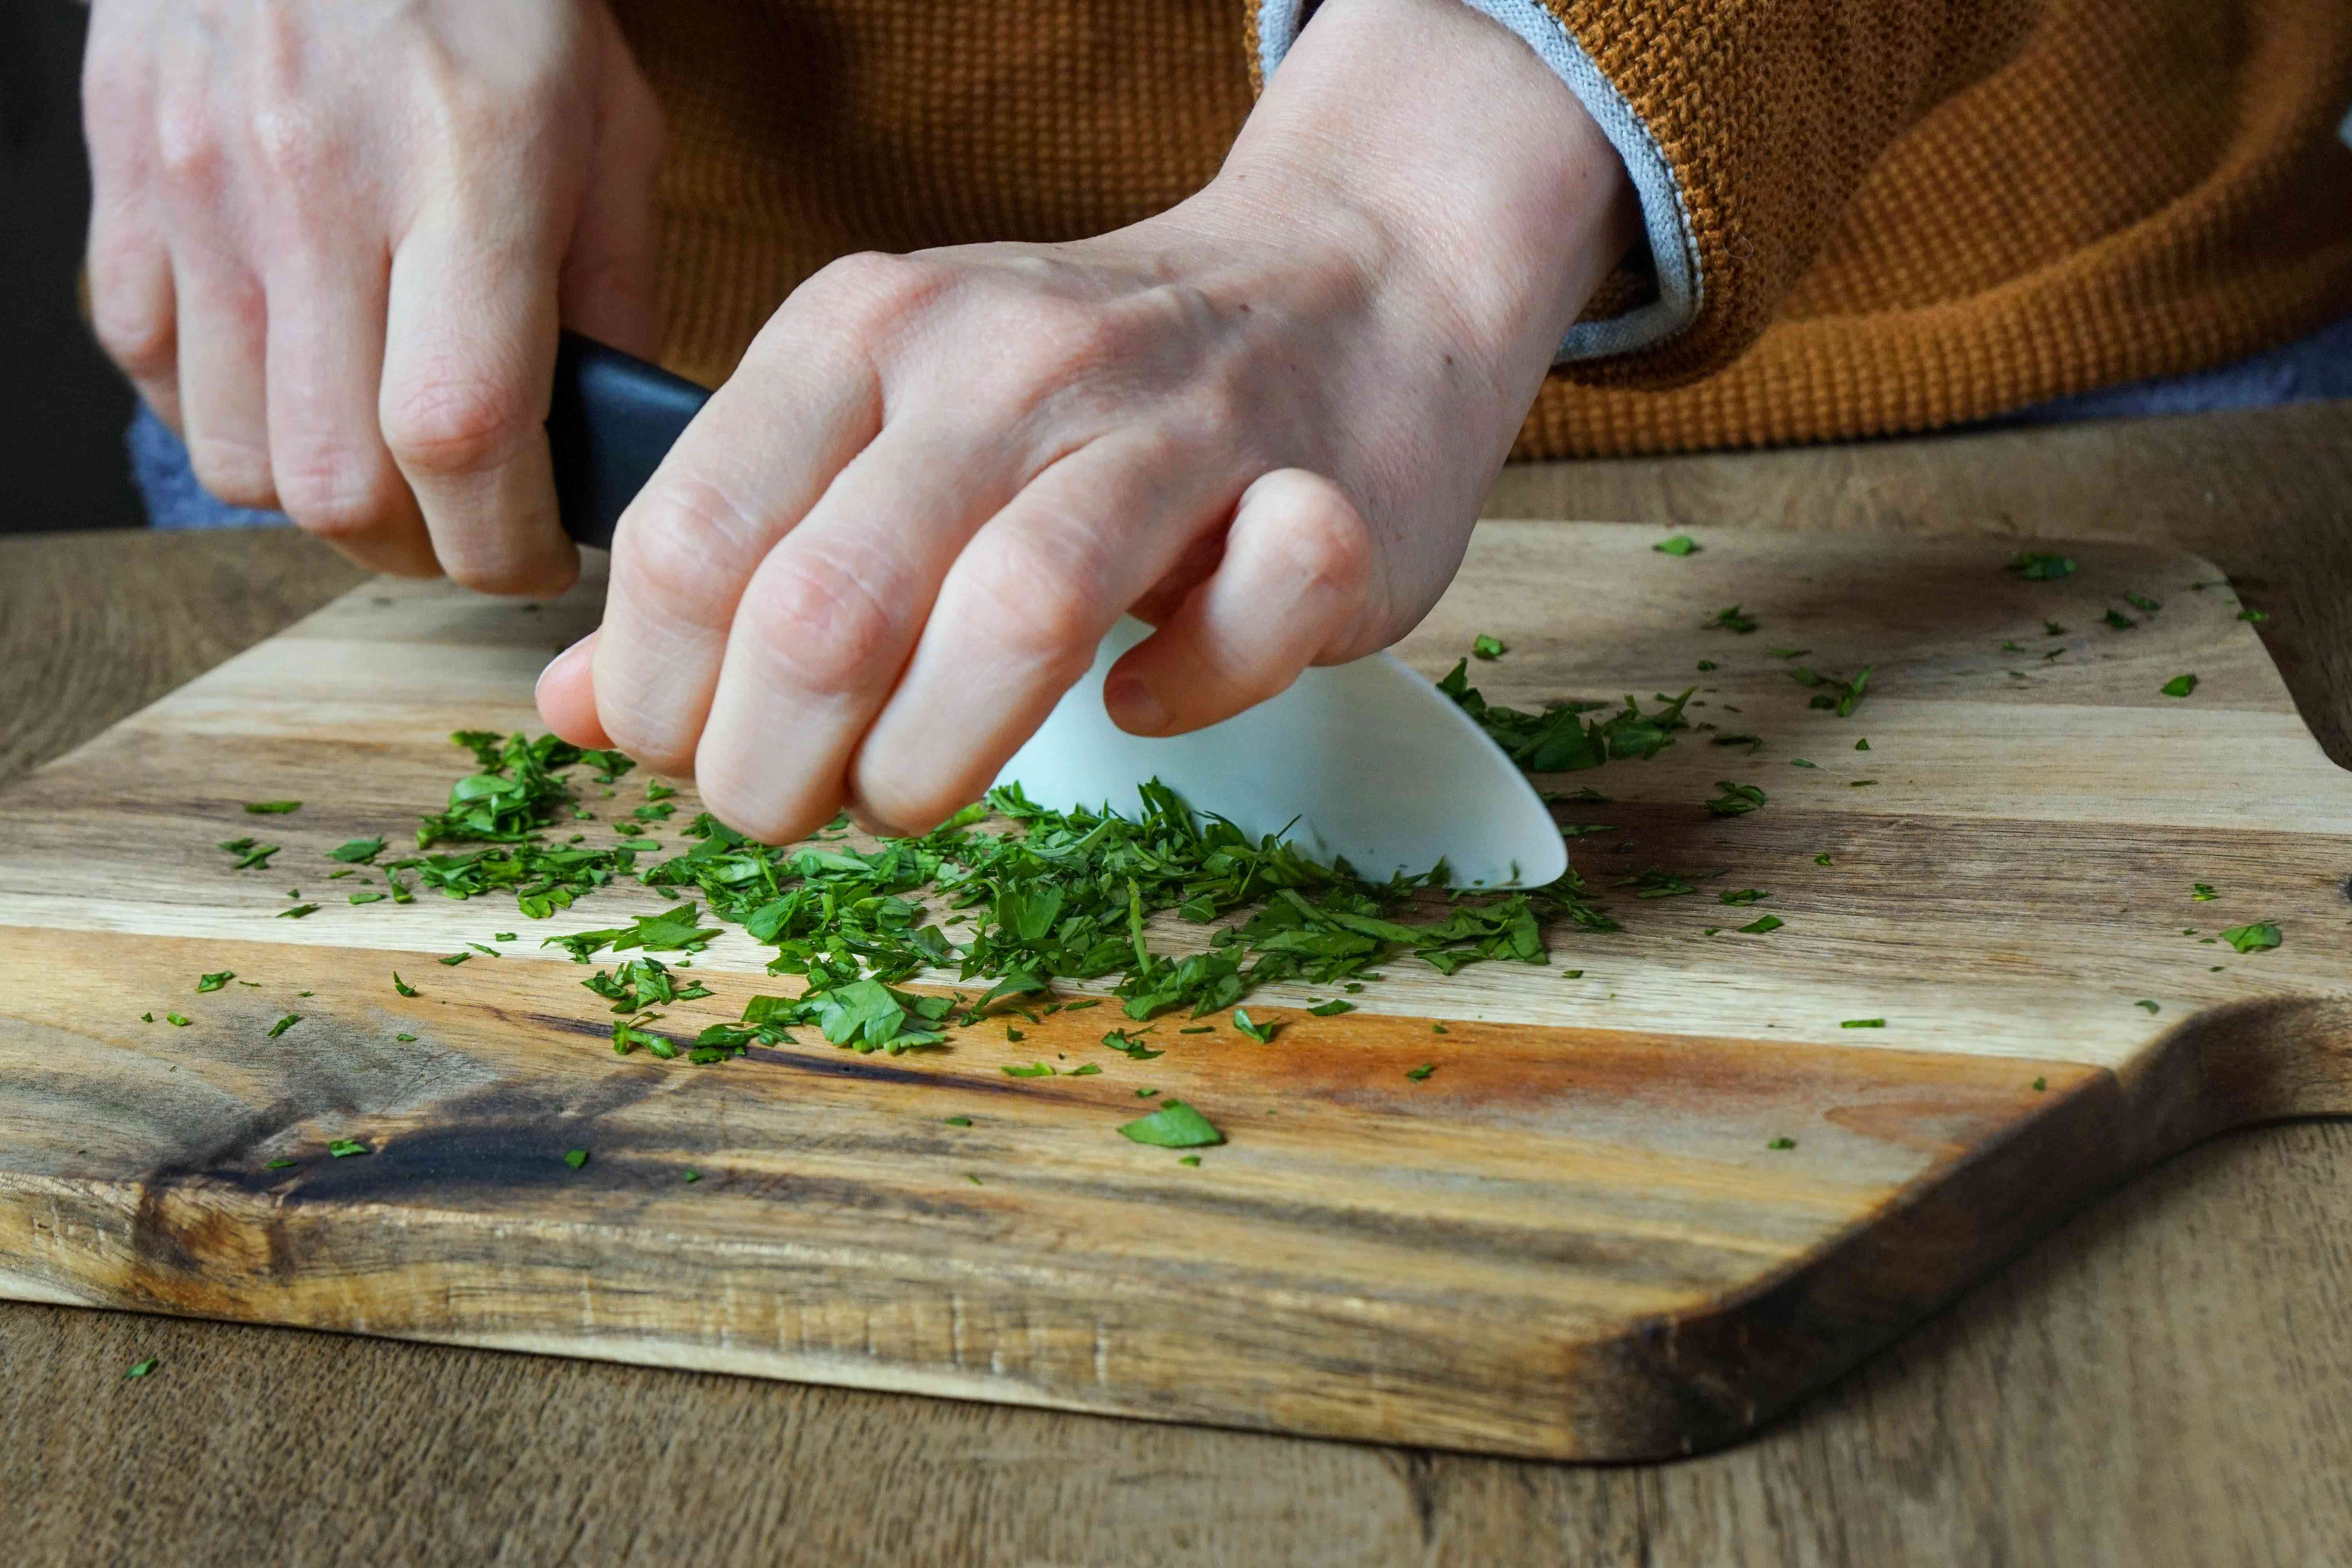 hands chop fresh parsley with white ceramic knife on wooden board